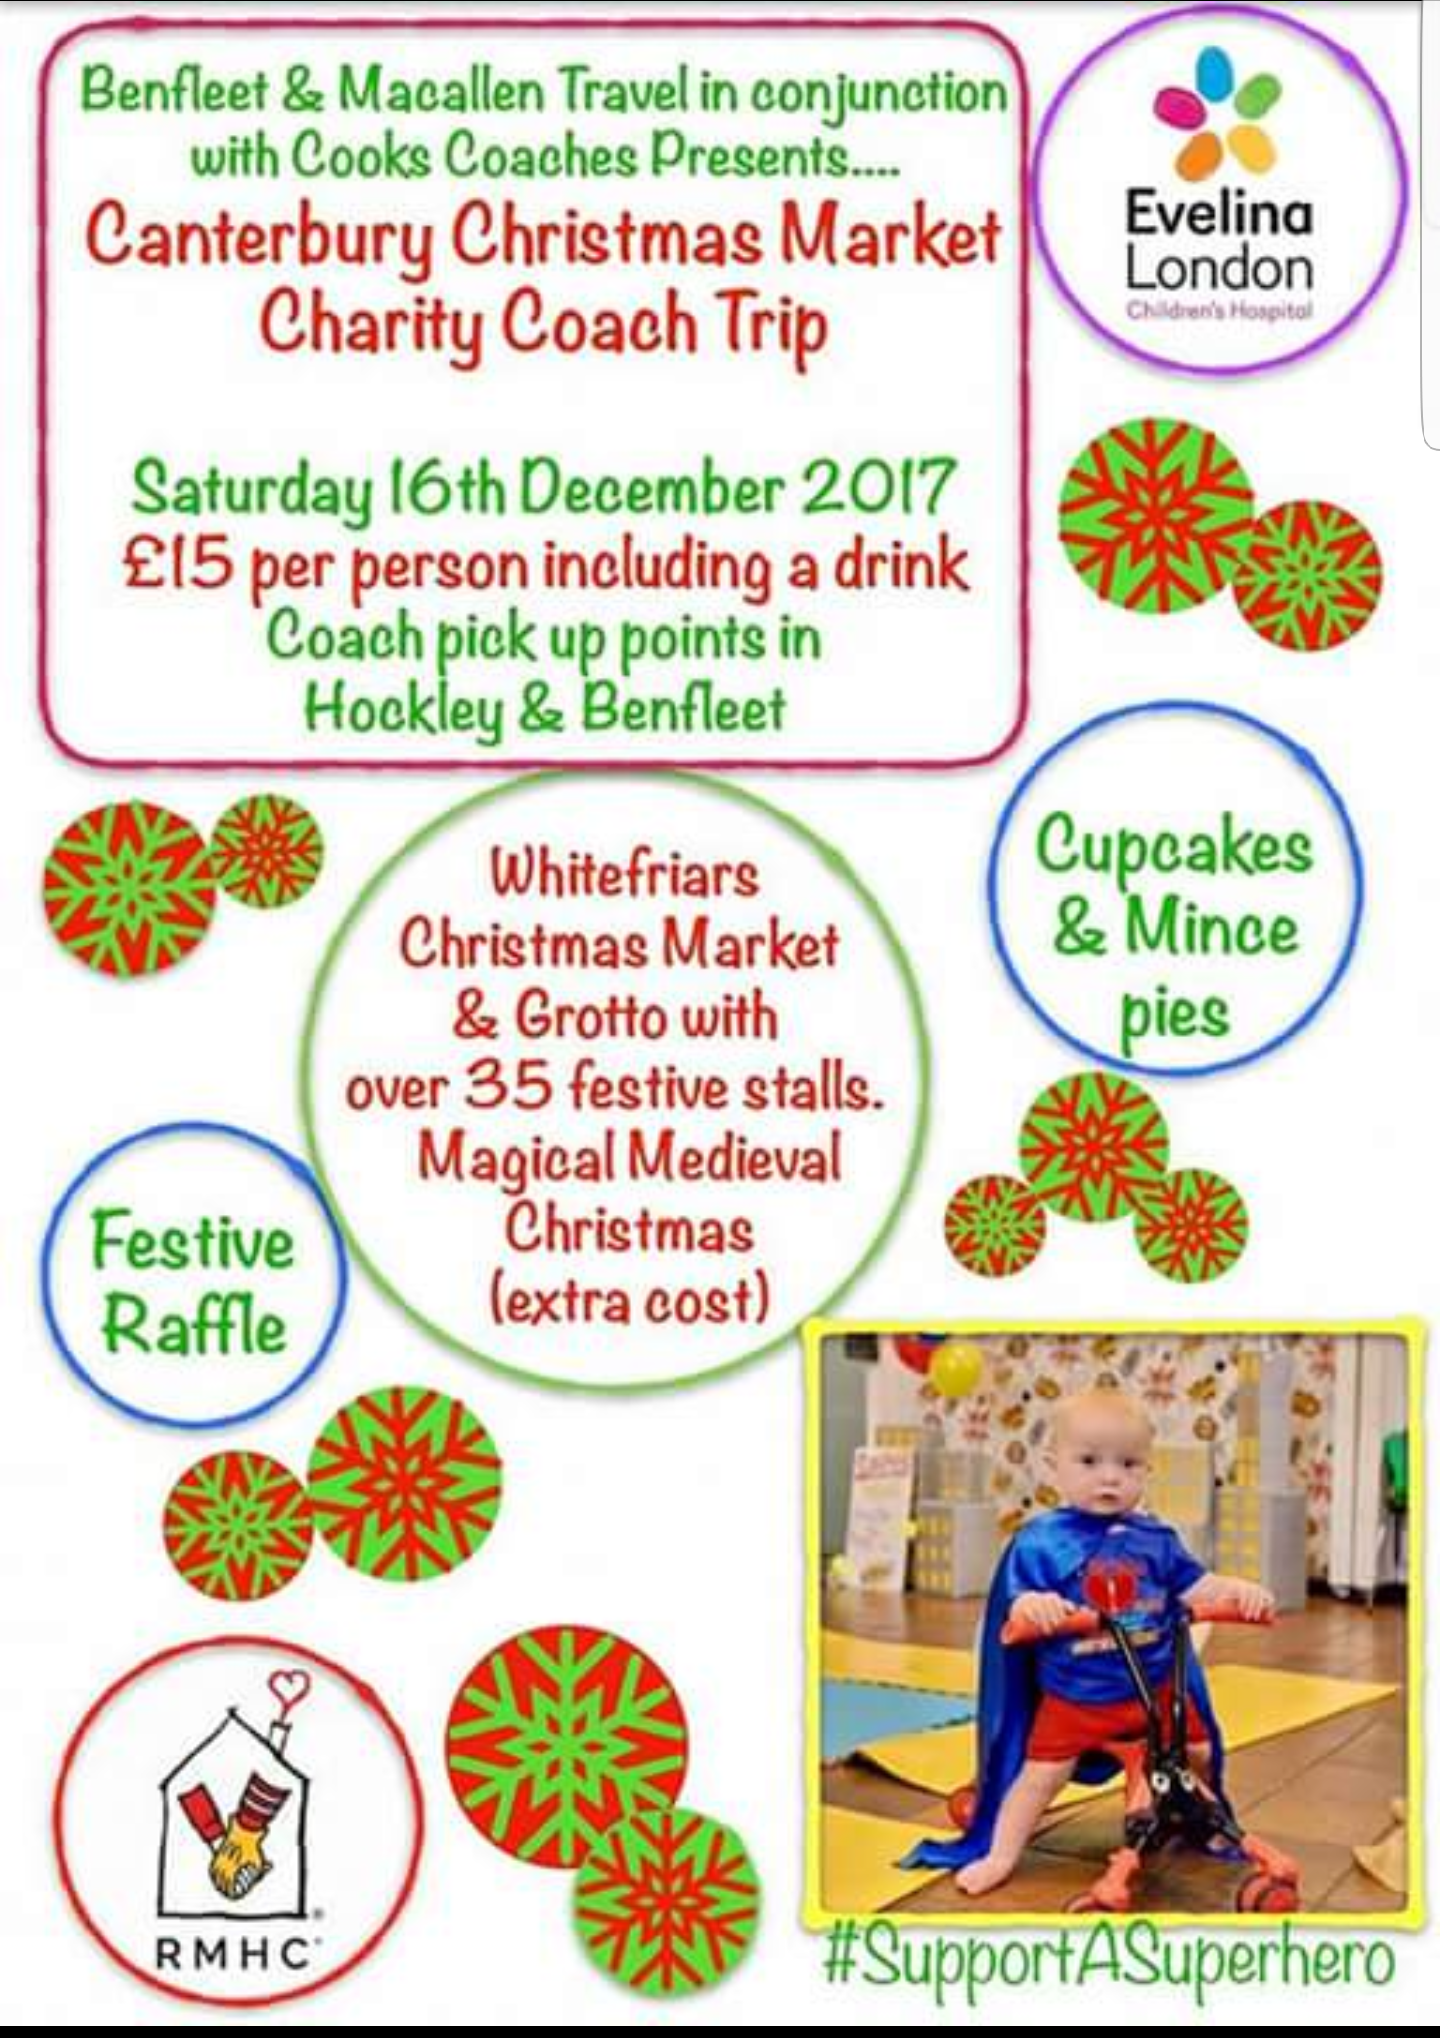 Christmas market charity coach trip